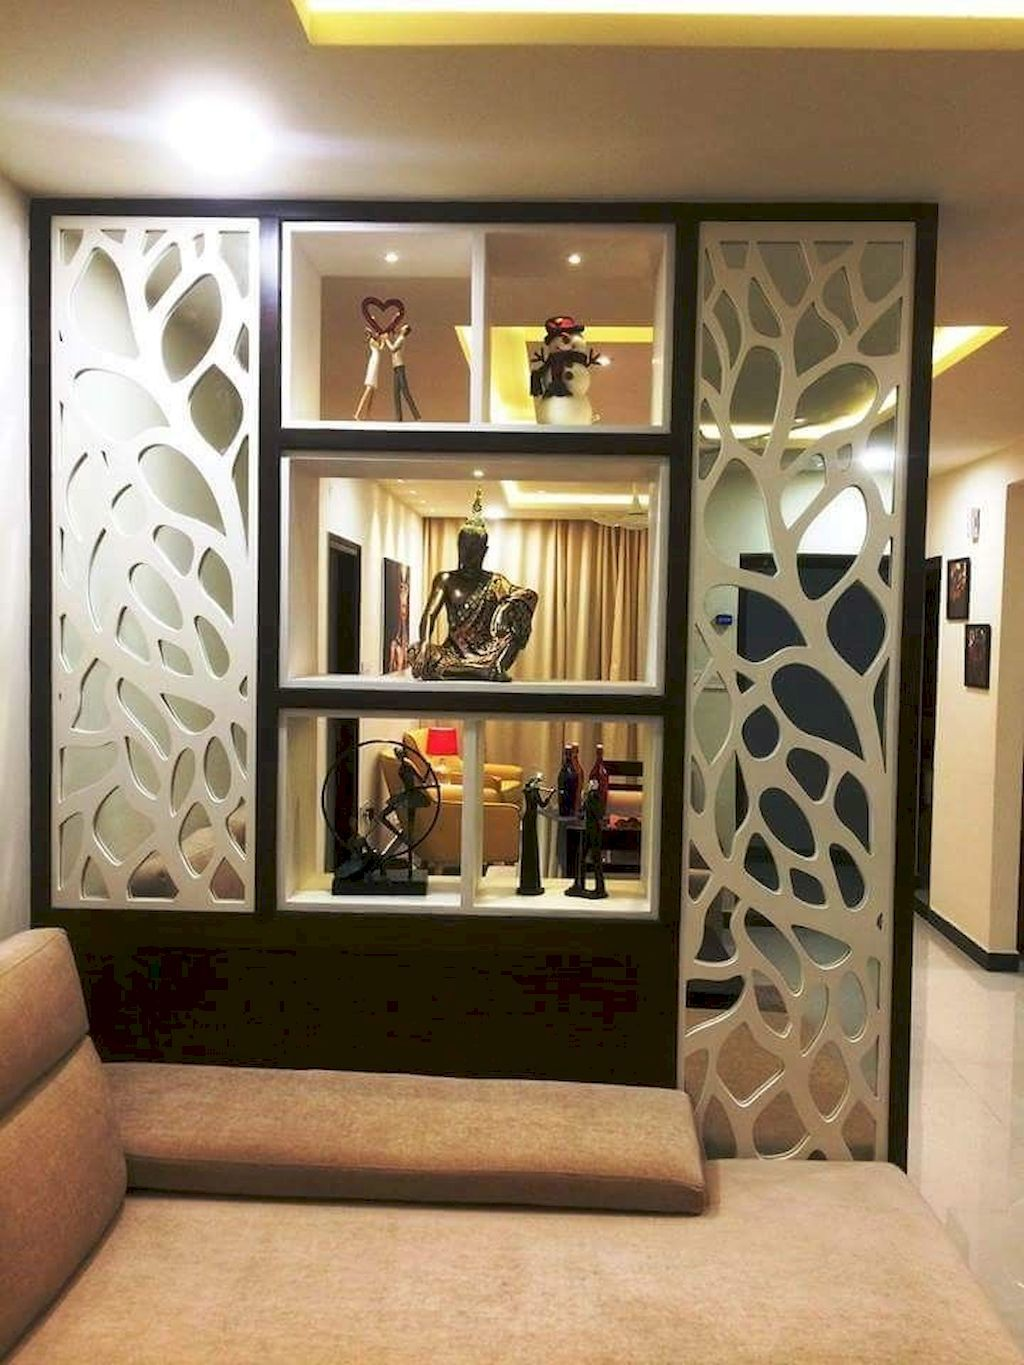 Magnificent Amazing Design Of The Partition Beautiful Space Living Room Partition Design Room Partition Designs Living Room Partition